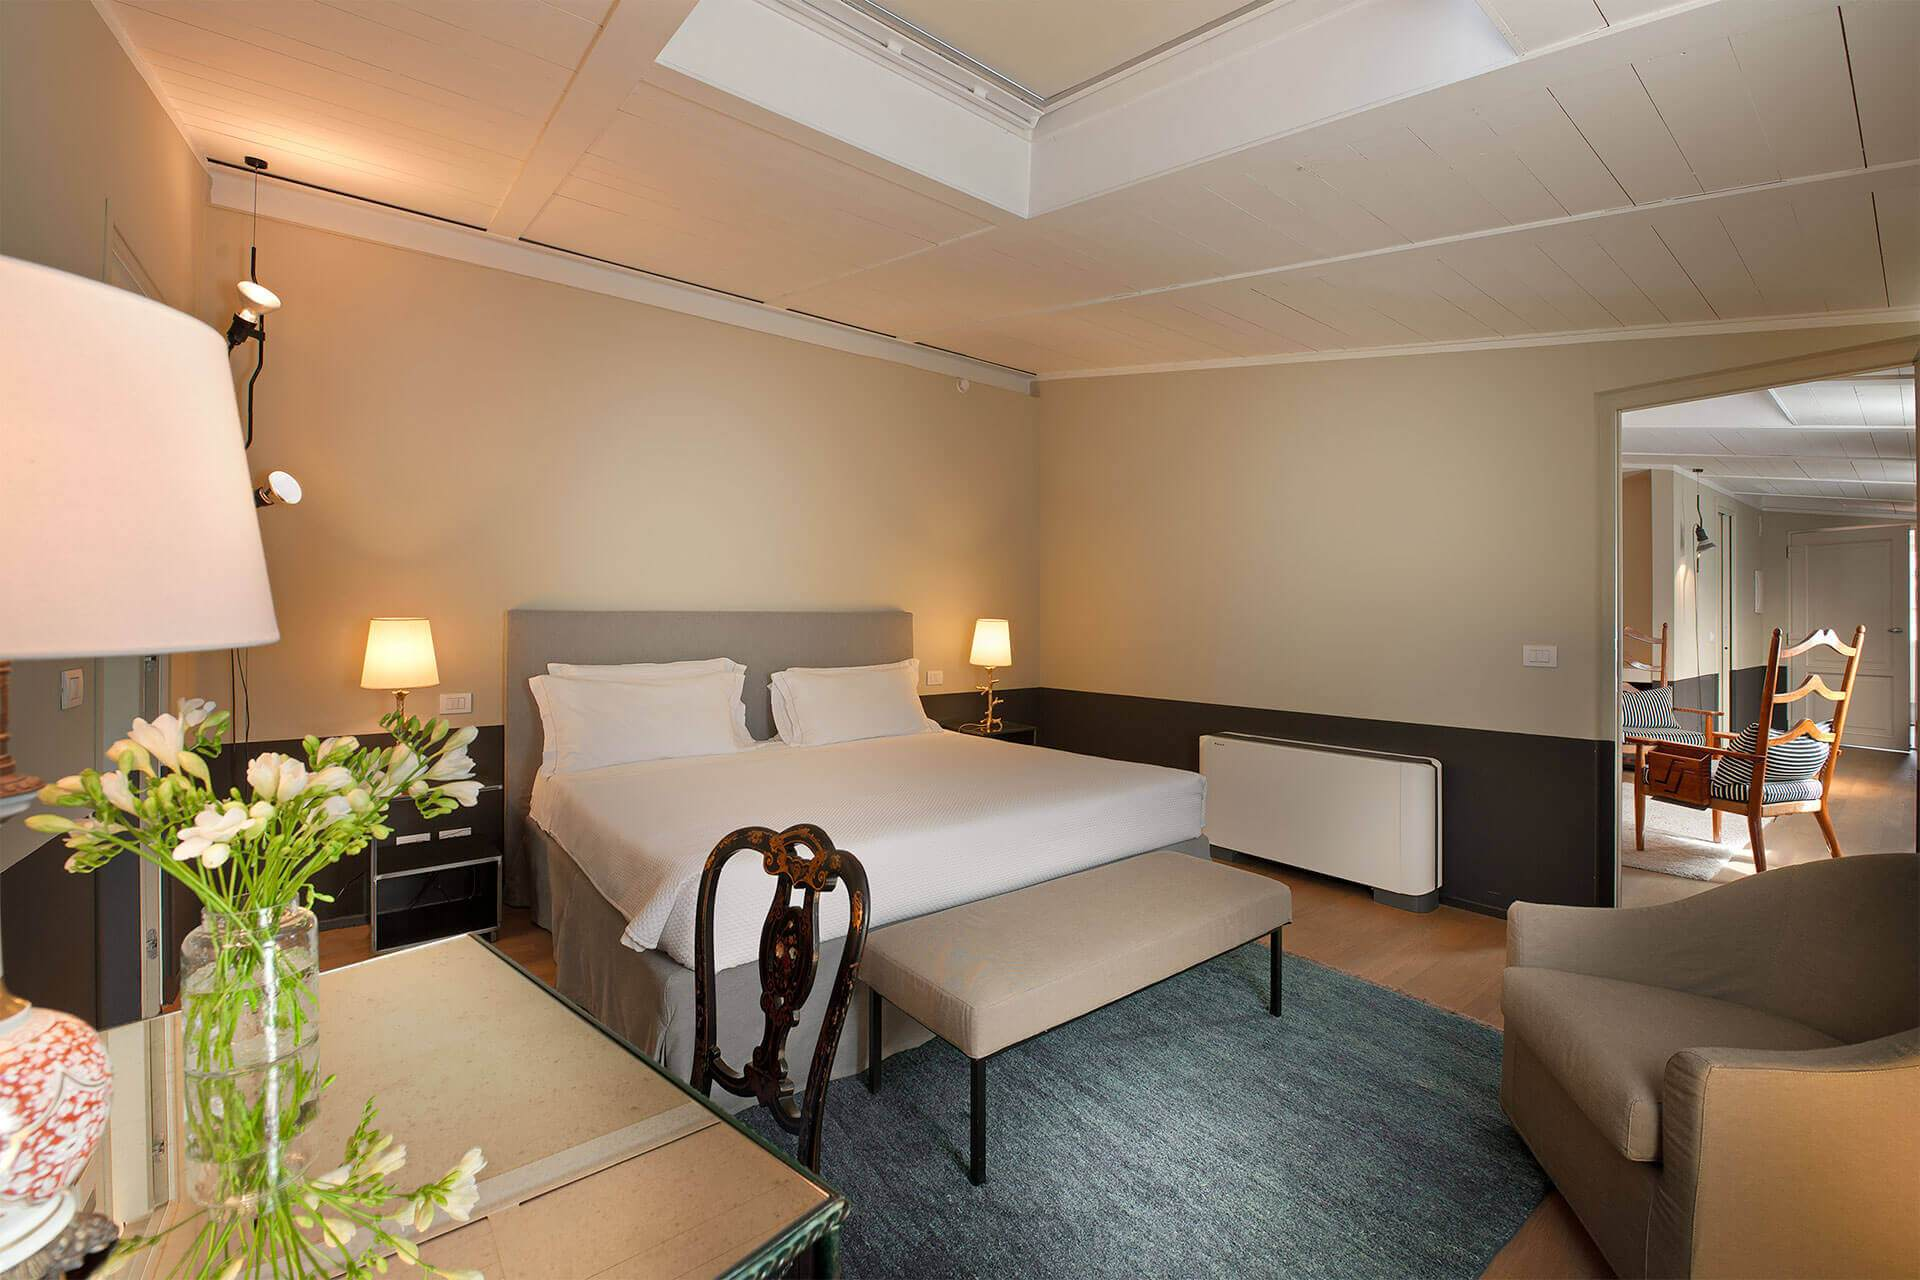 Charming hotel maison borella milan official site milan for Hotel maison